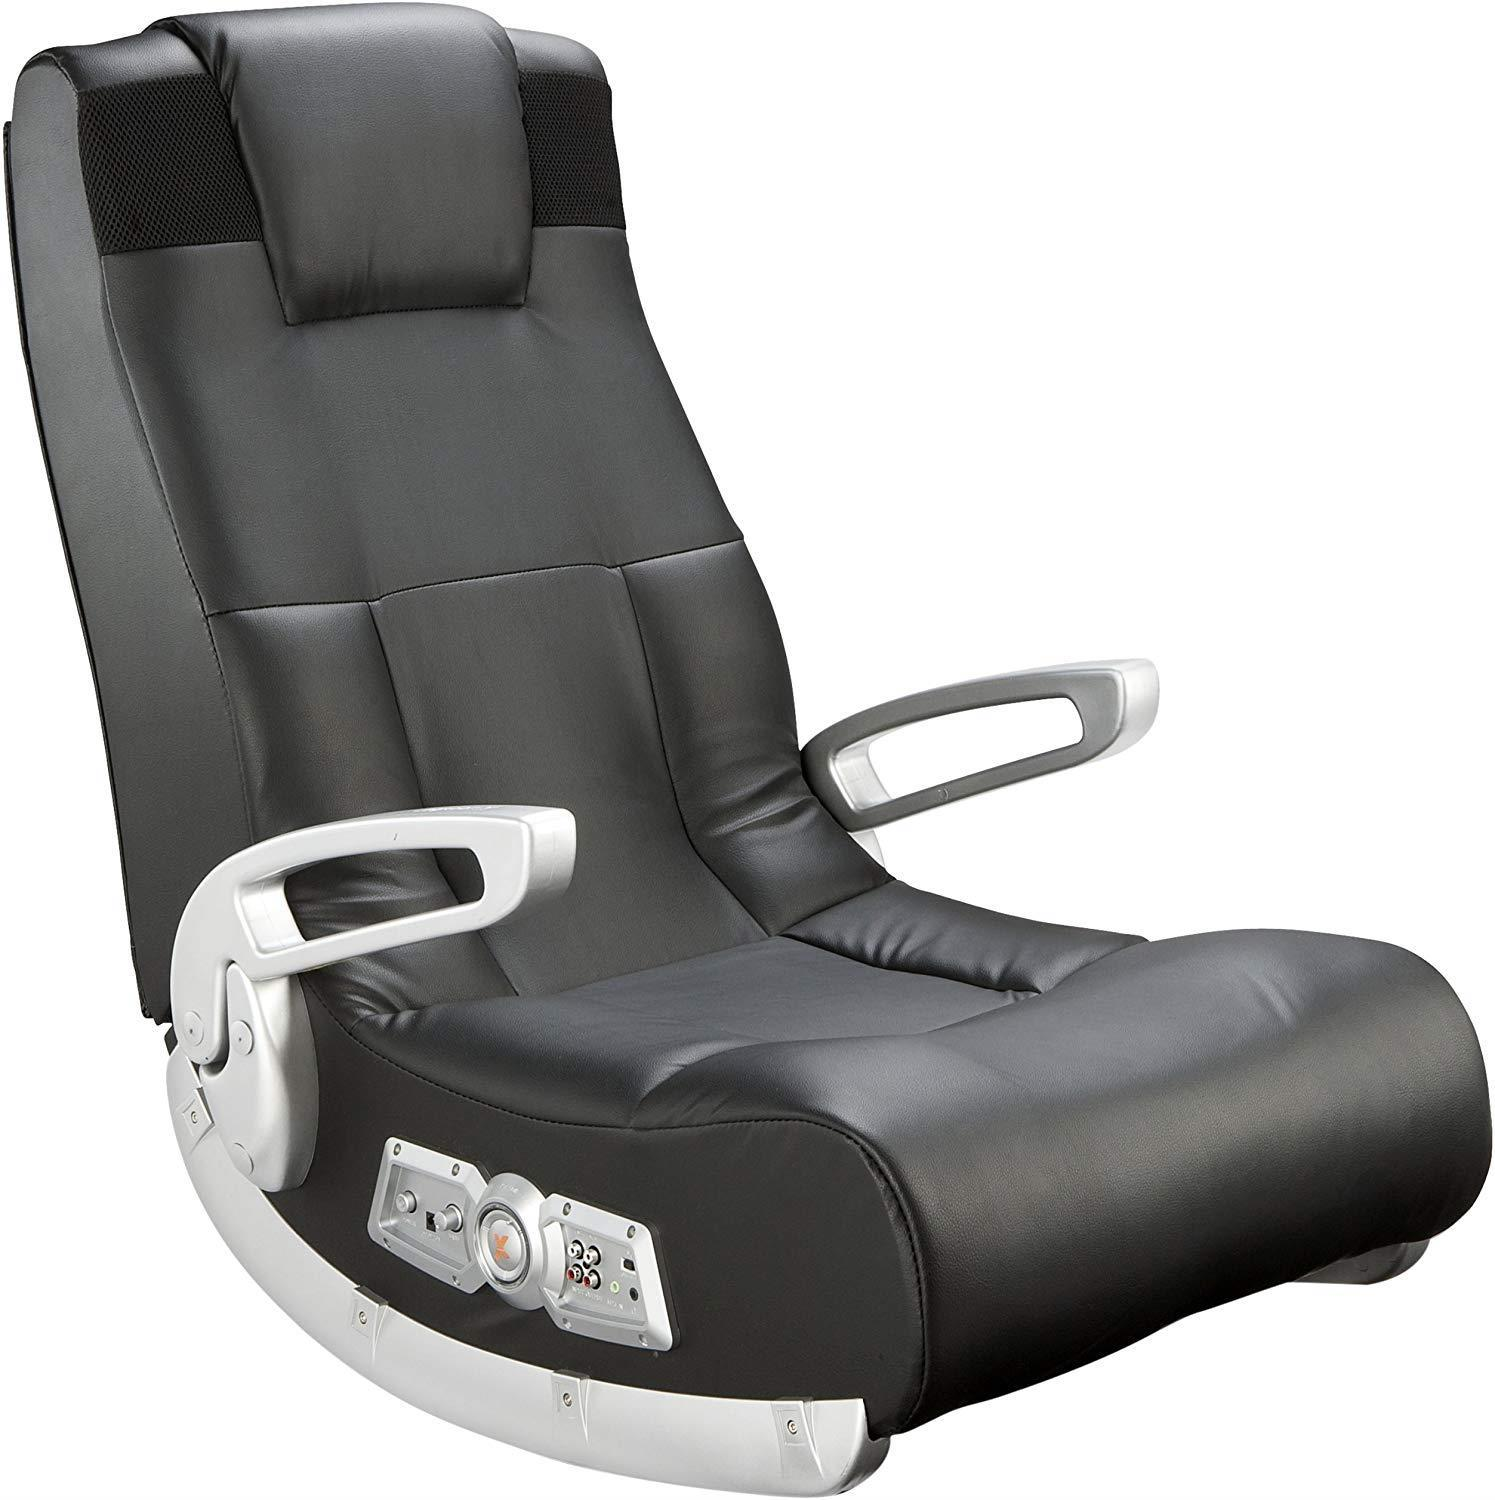 Ace Bayou X Rocker II SE 2.1 Black Leather Floor Video Gaming Chair